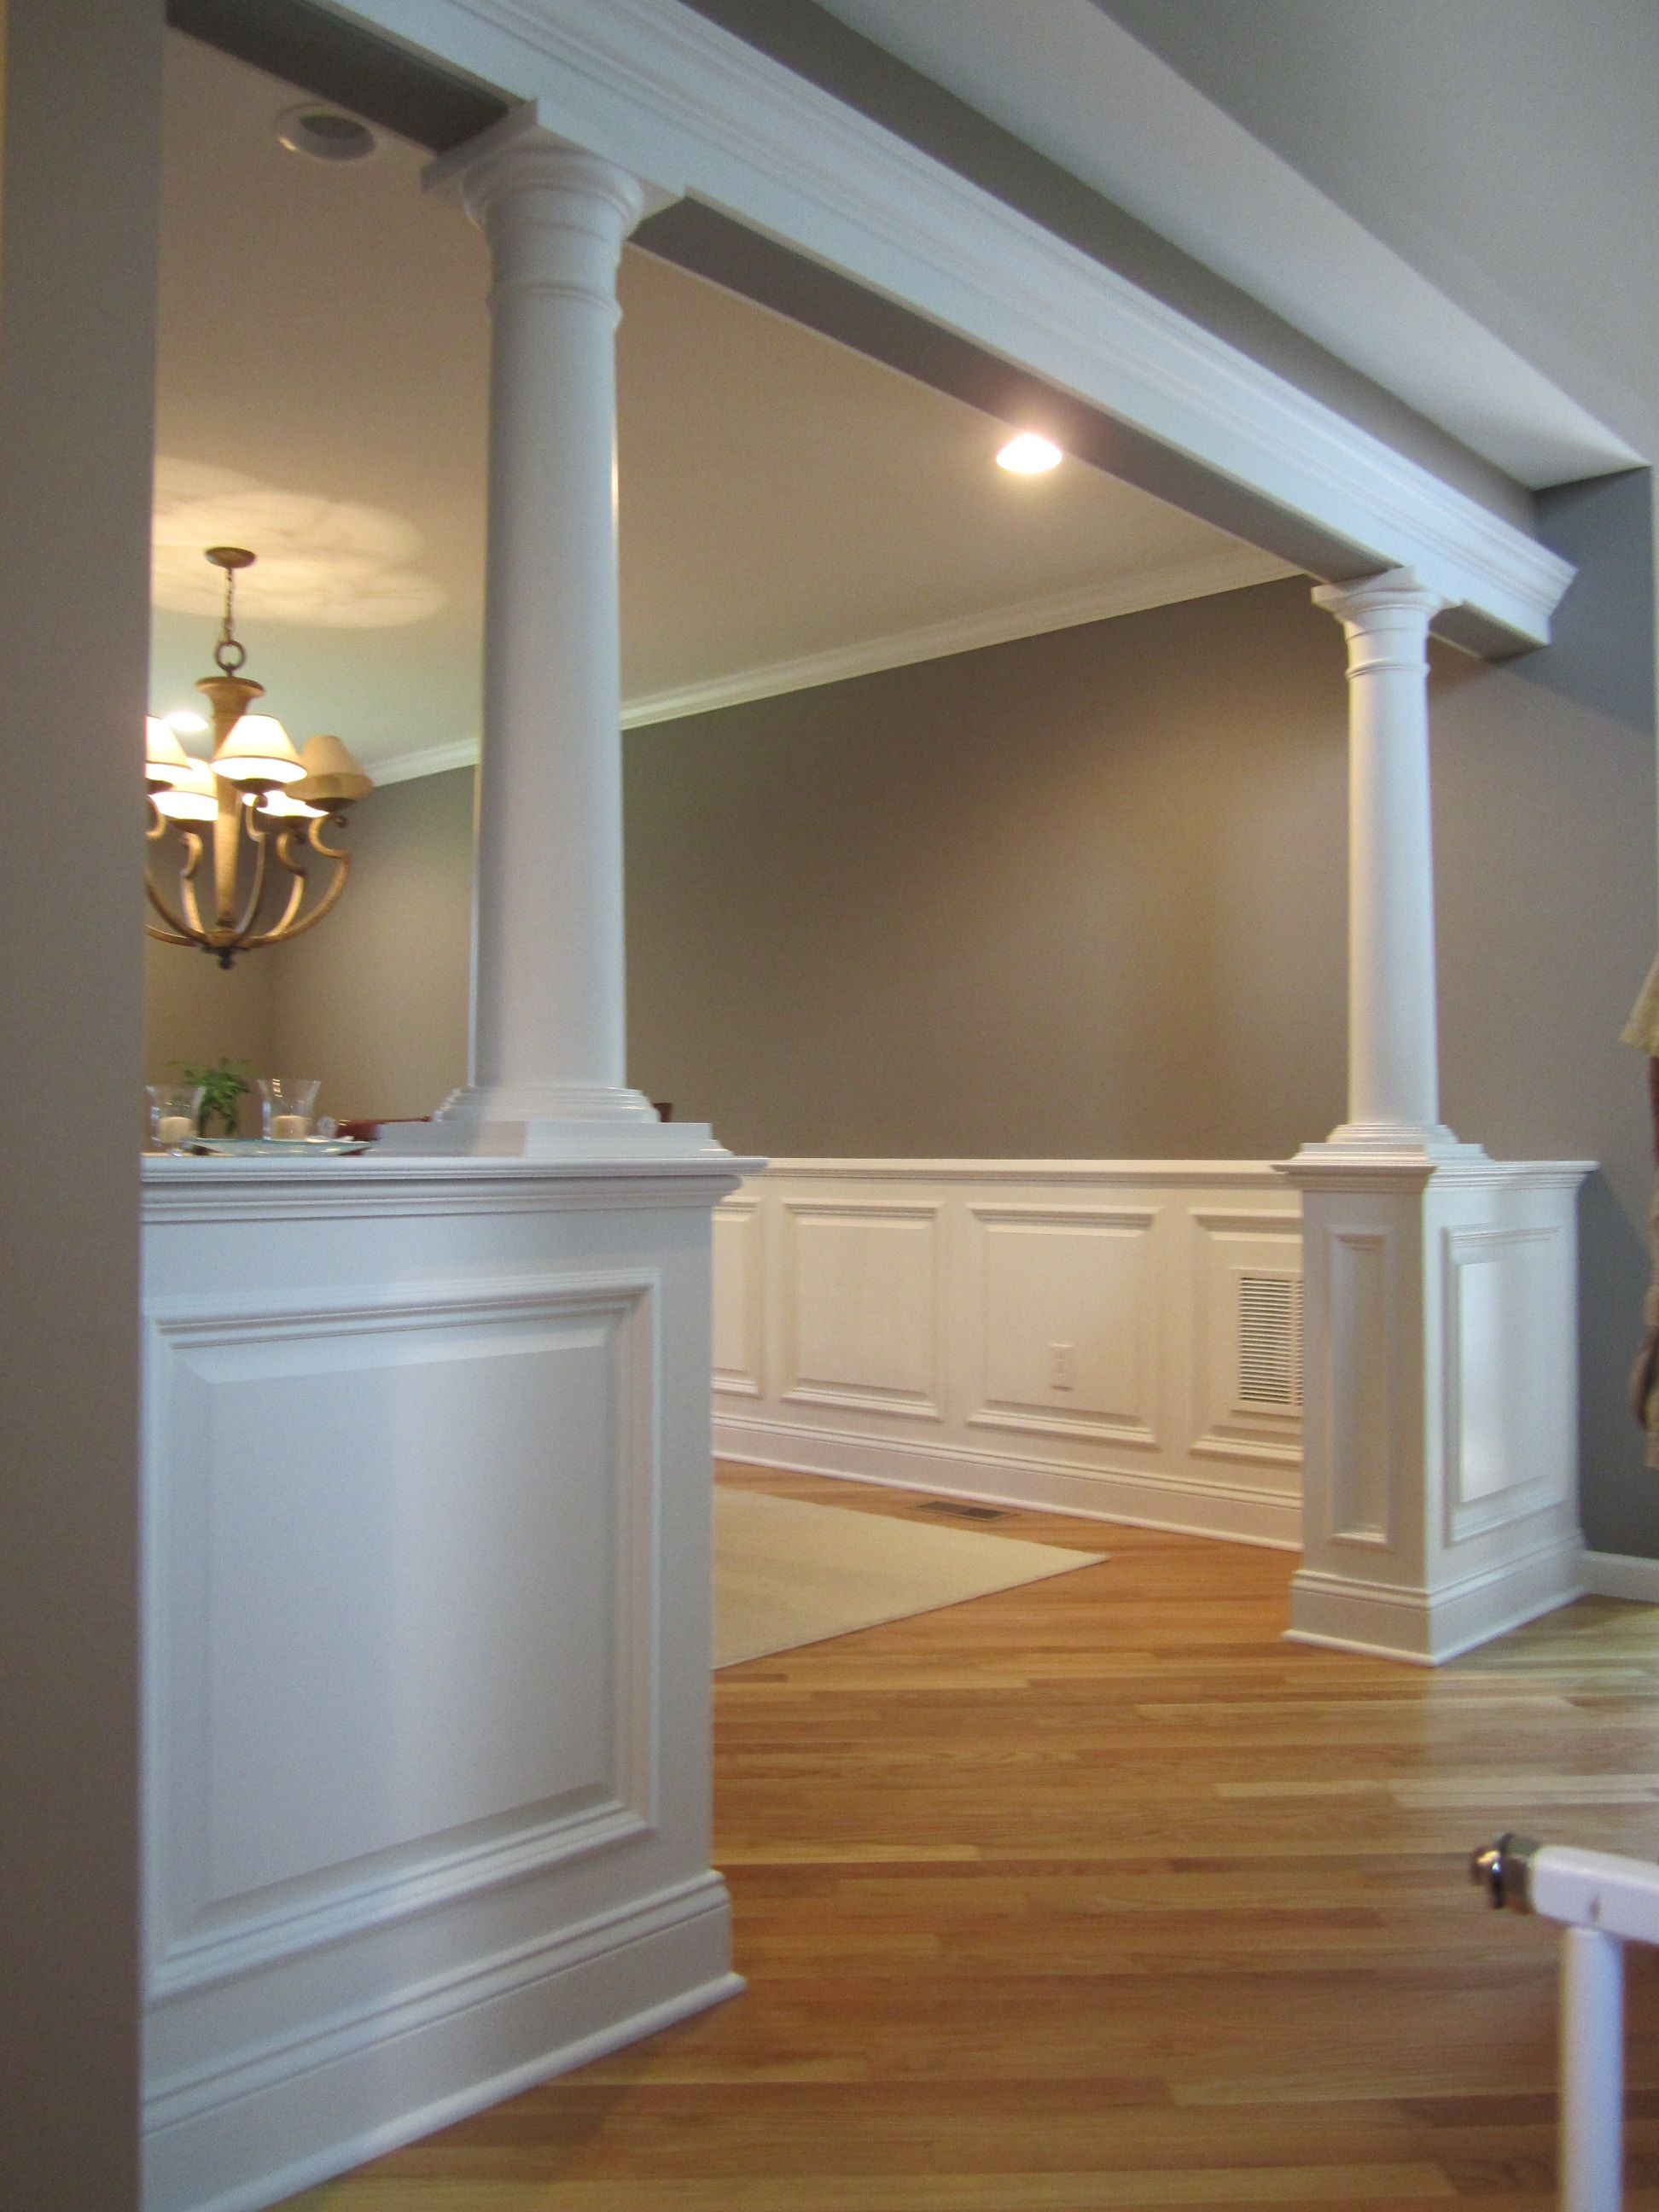 Half wall with columns bolton ct decor ideas for Interior columns design ideas